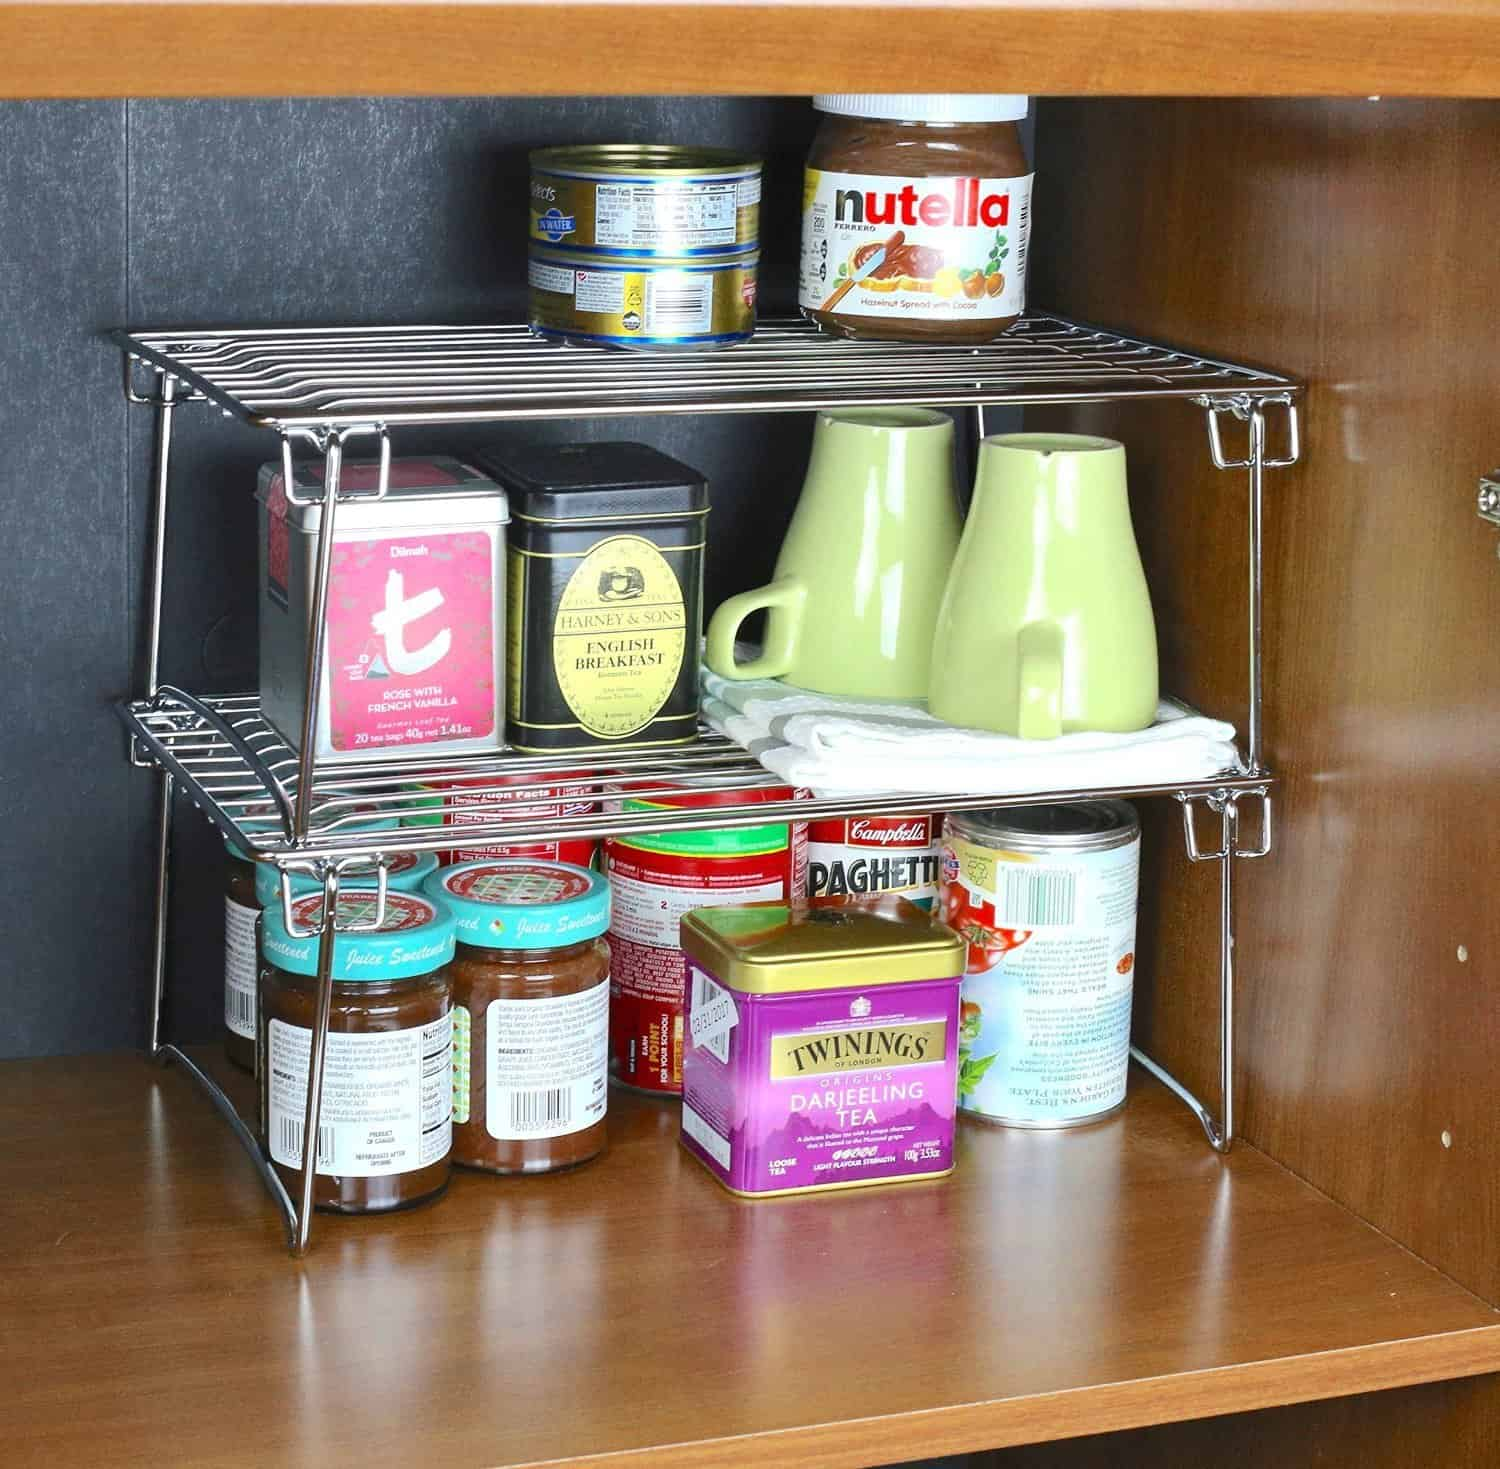 Kitchen Cabinet Organization Ideas: 15 Mind-Blowing Kitchen Cabinet Organization Ideas You'll